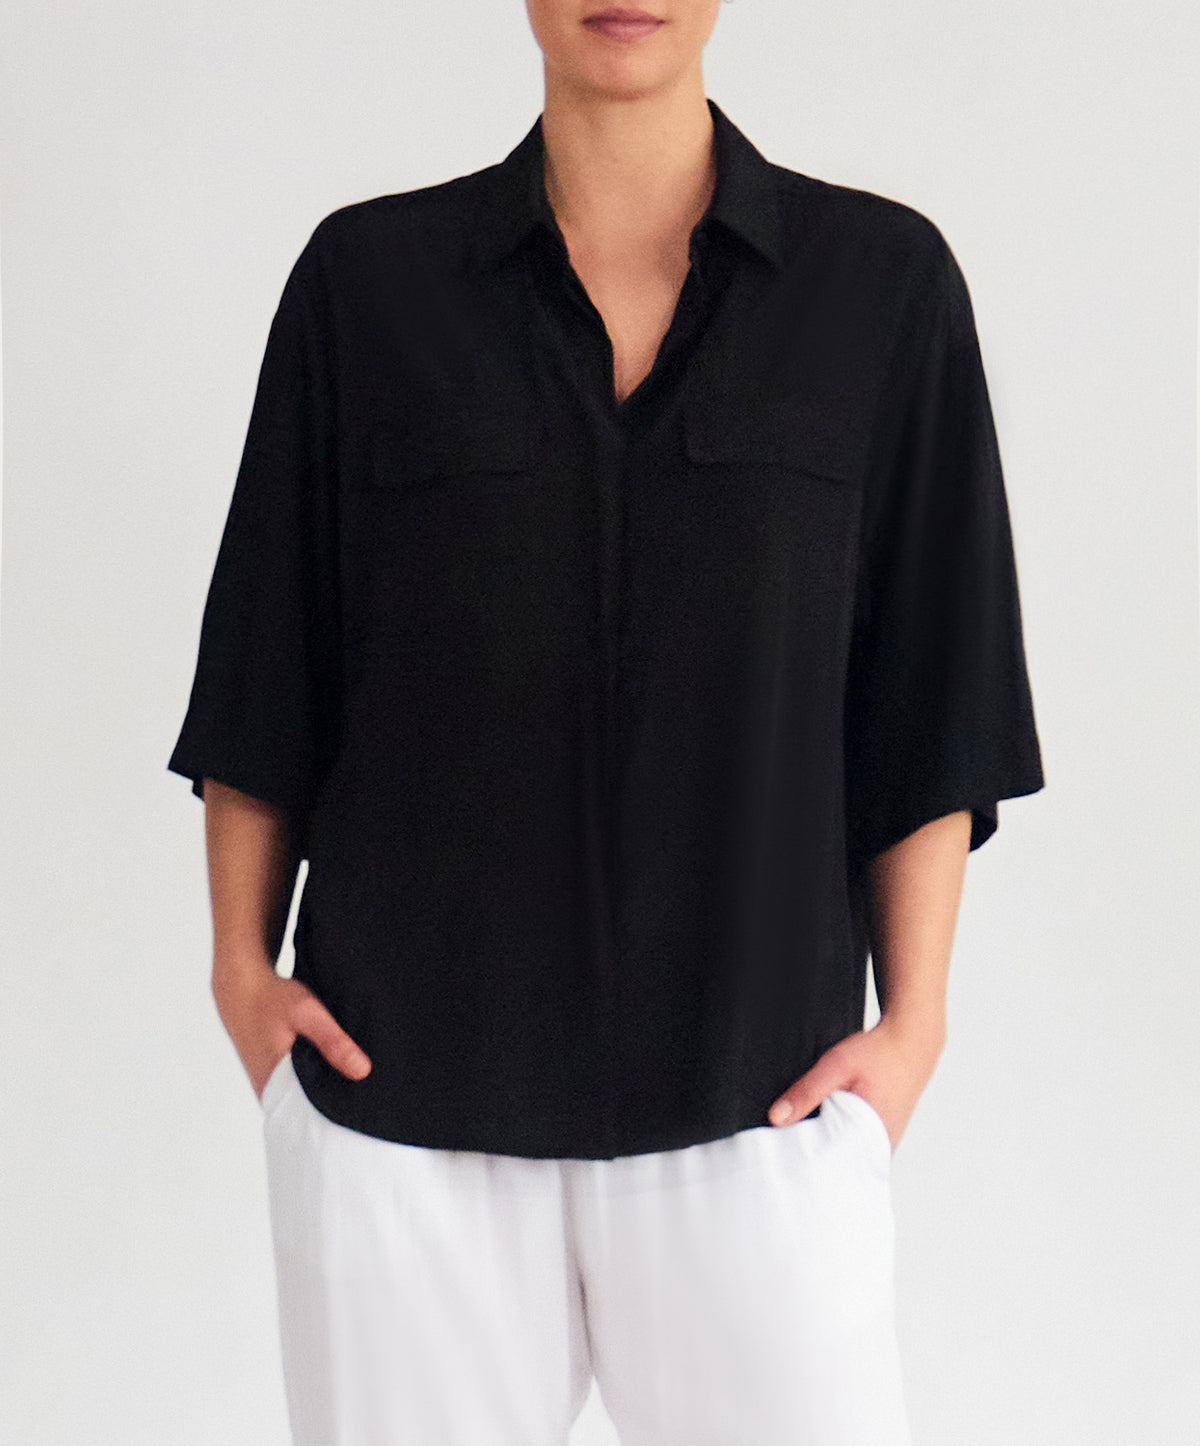 Soft Sleeve Shirt